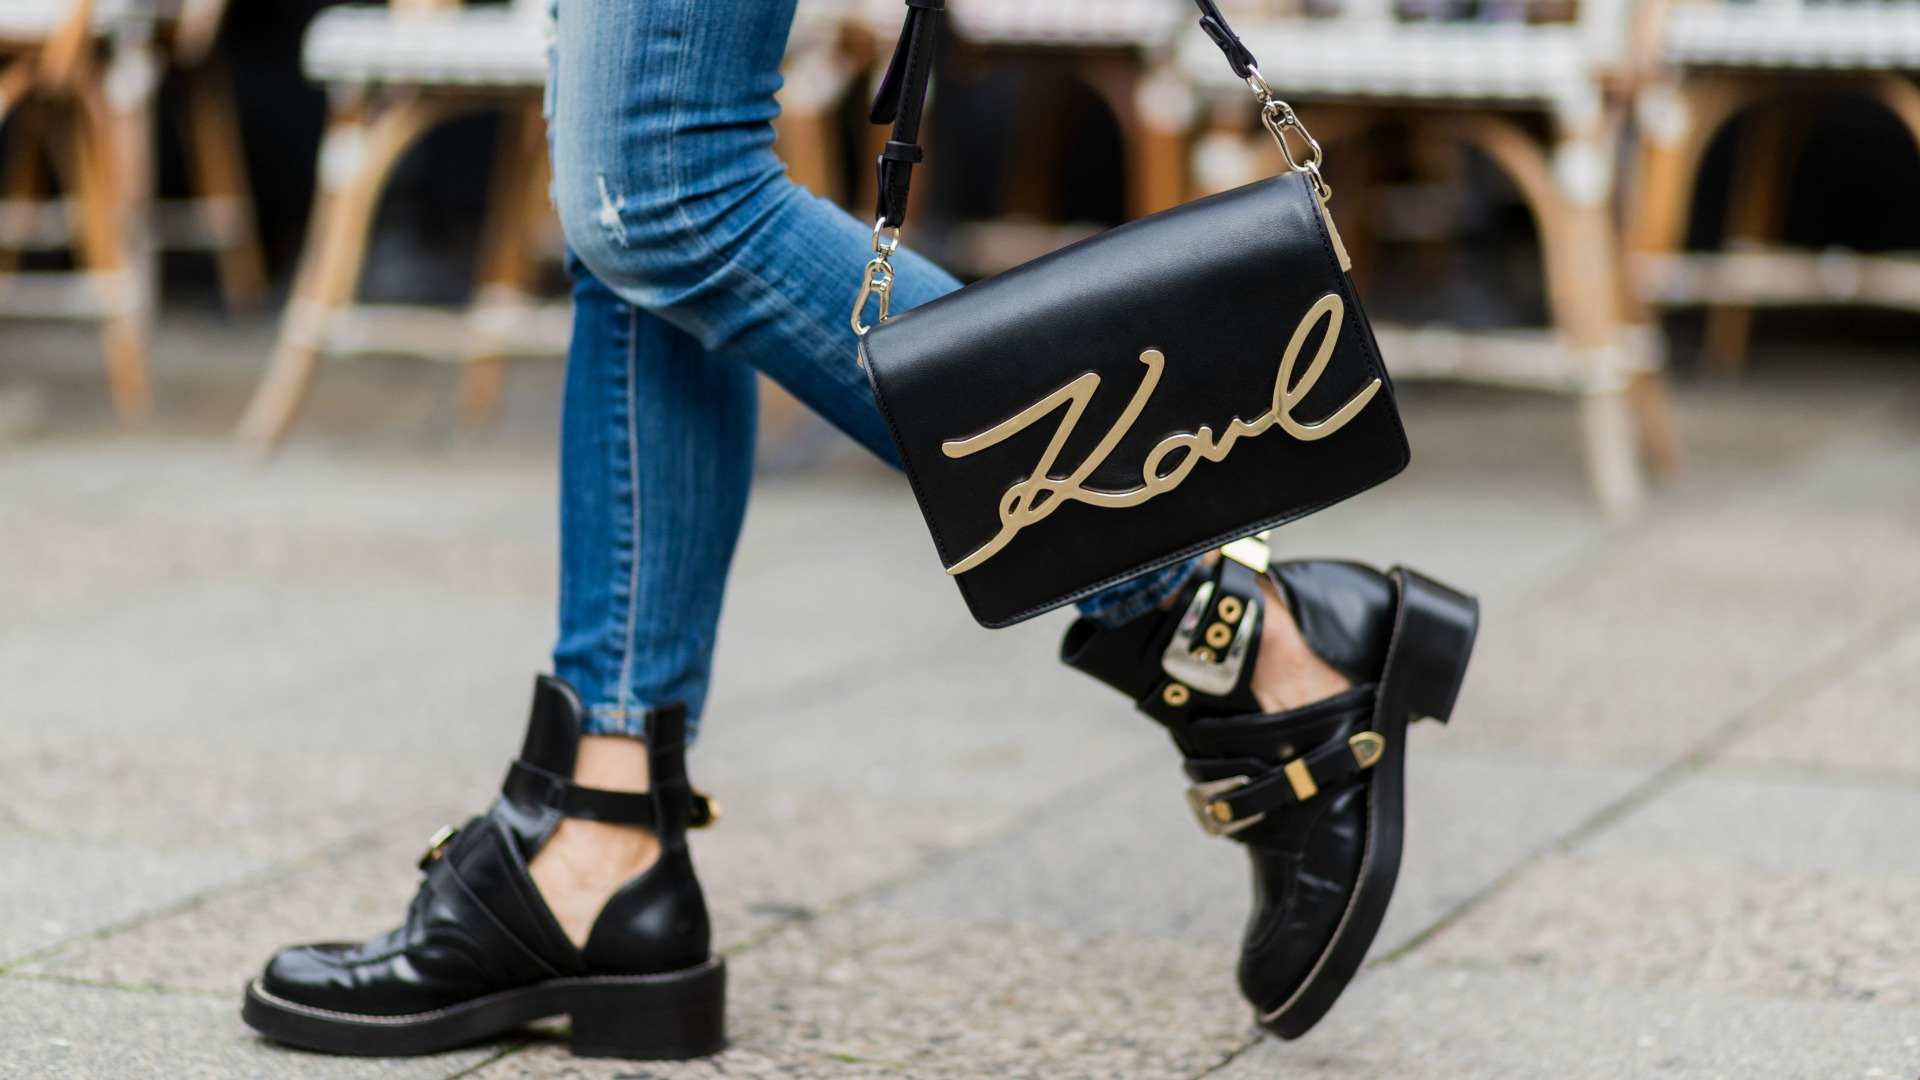 Here's How to Nail the Ankle Boots and Jeans Look Every Single Time